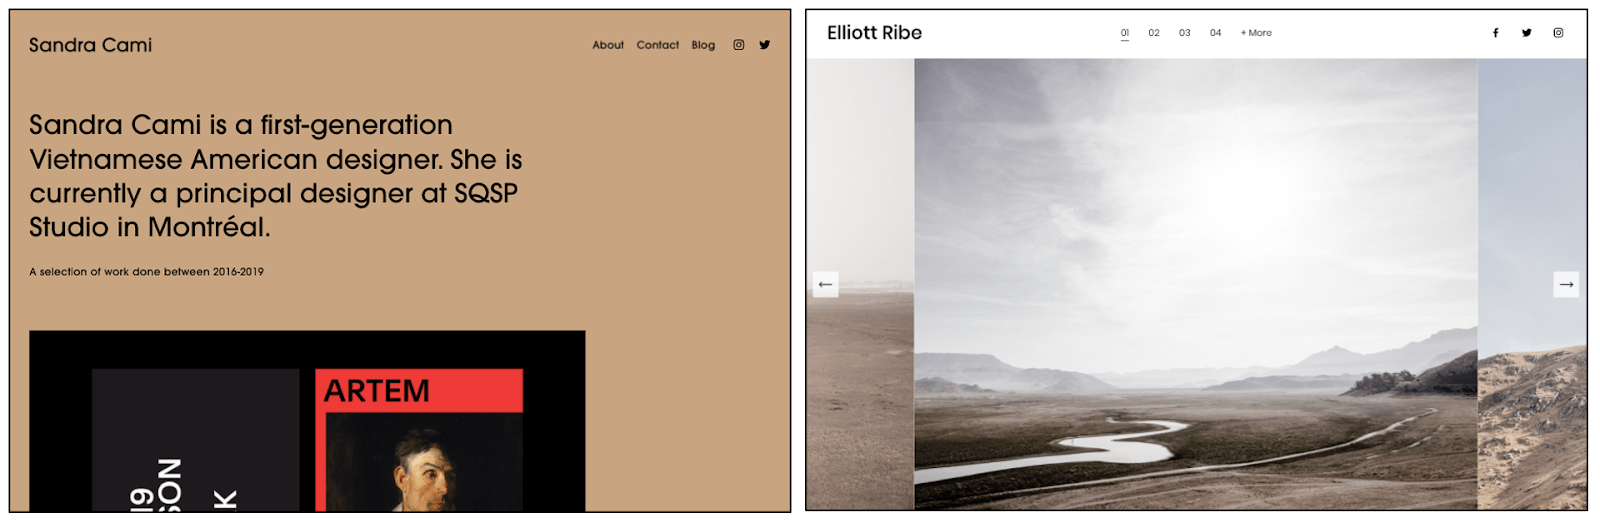 Squarespace templates that are not recommended for portfolios